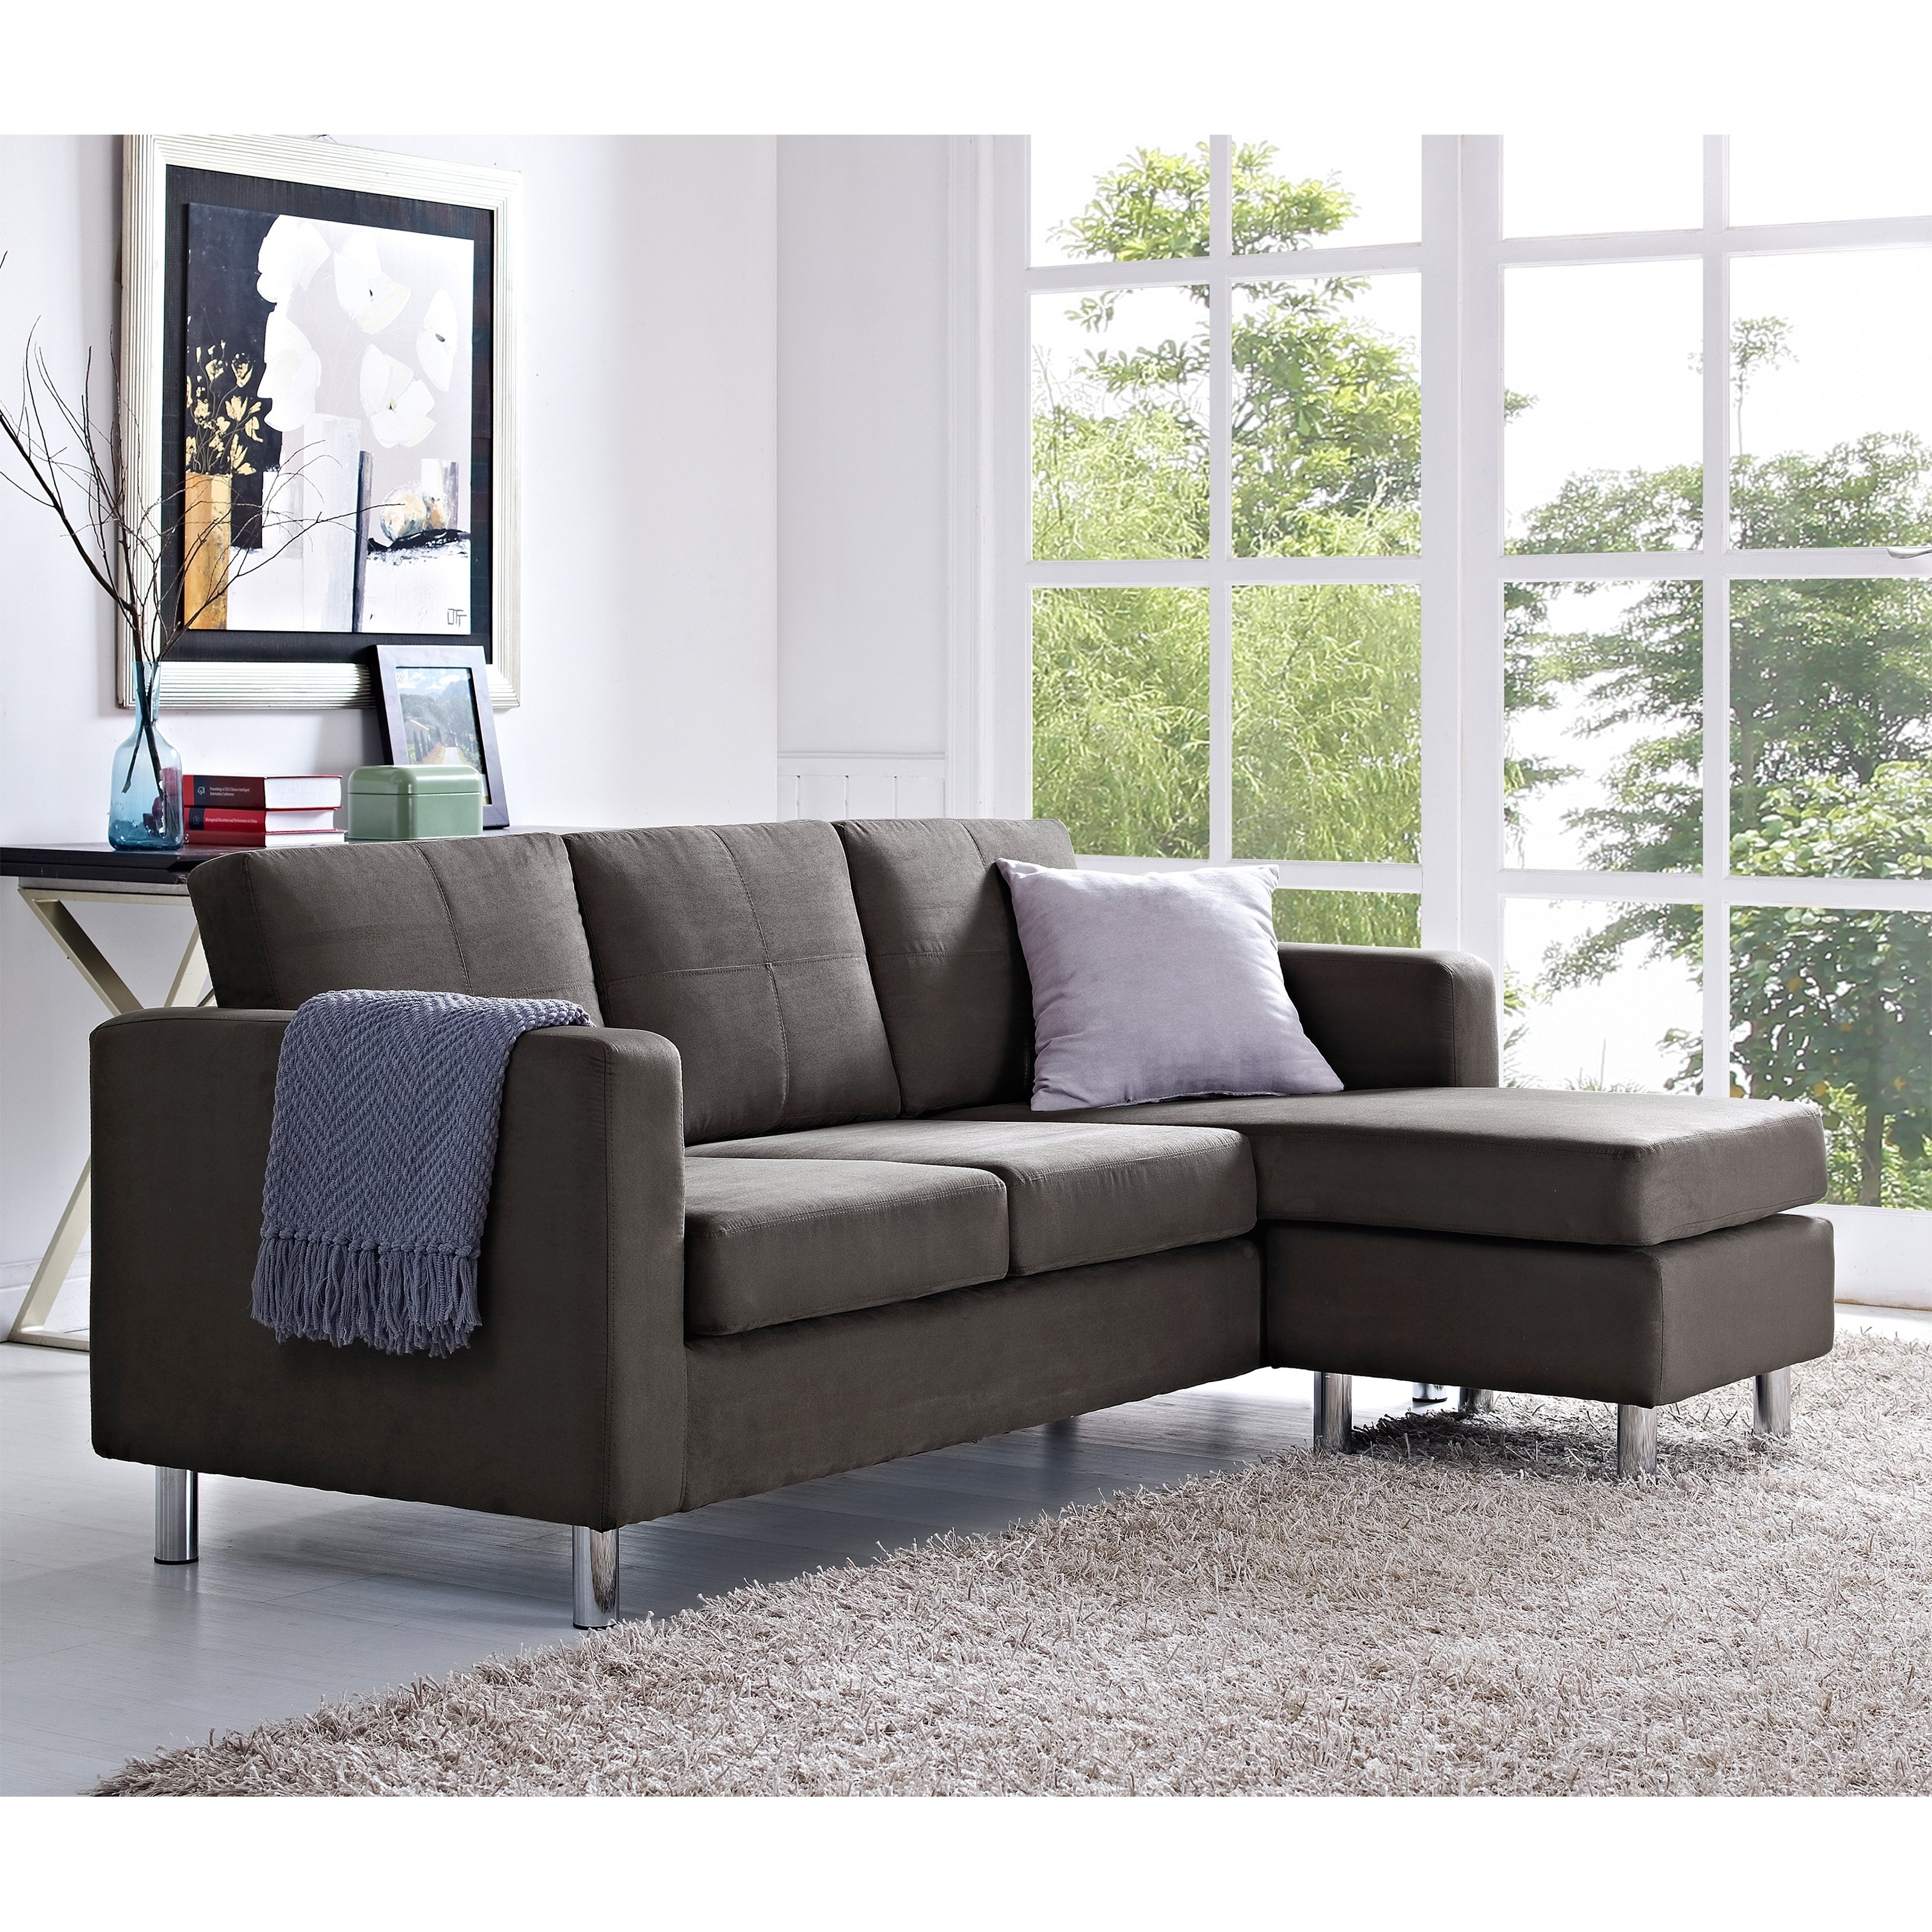 Dorel Living Small Spaces Sectional Chaise Sofa • Sectional Sofa With Small Spaces Sectional Sofas (Image 4 of 10)